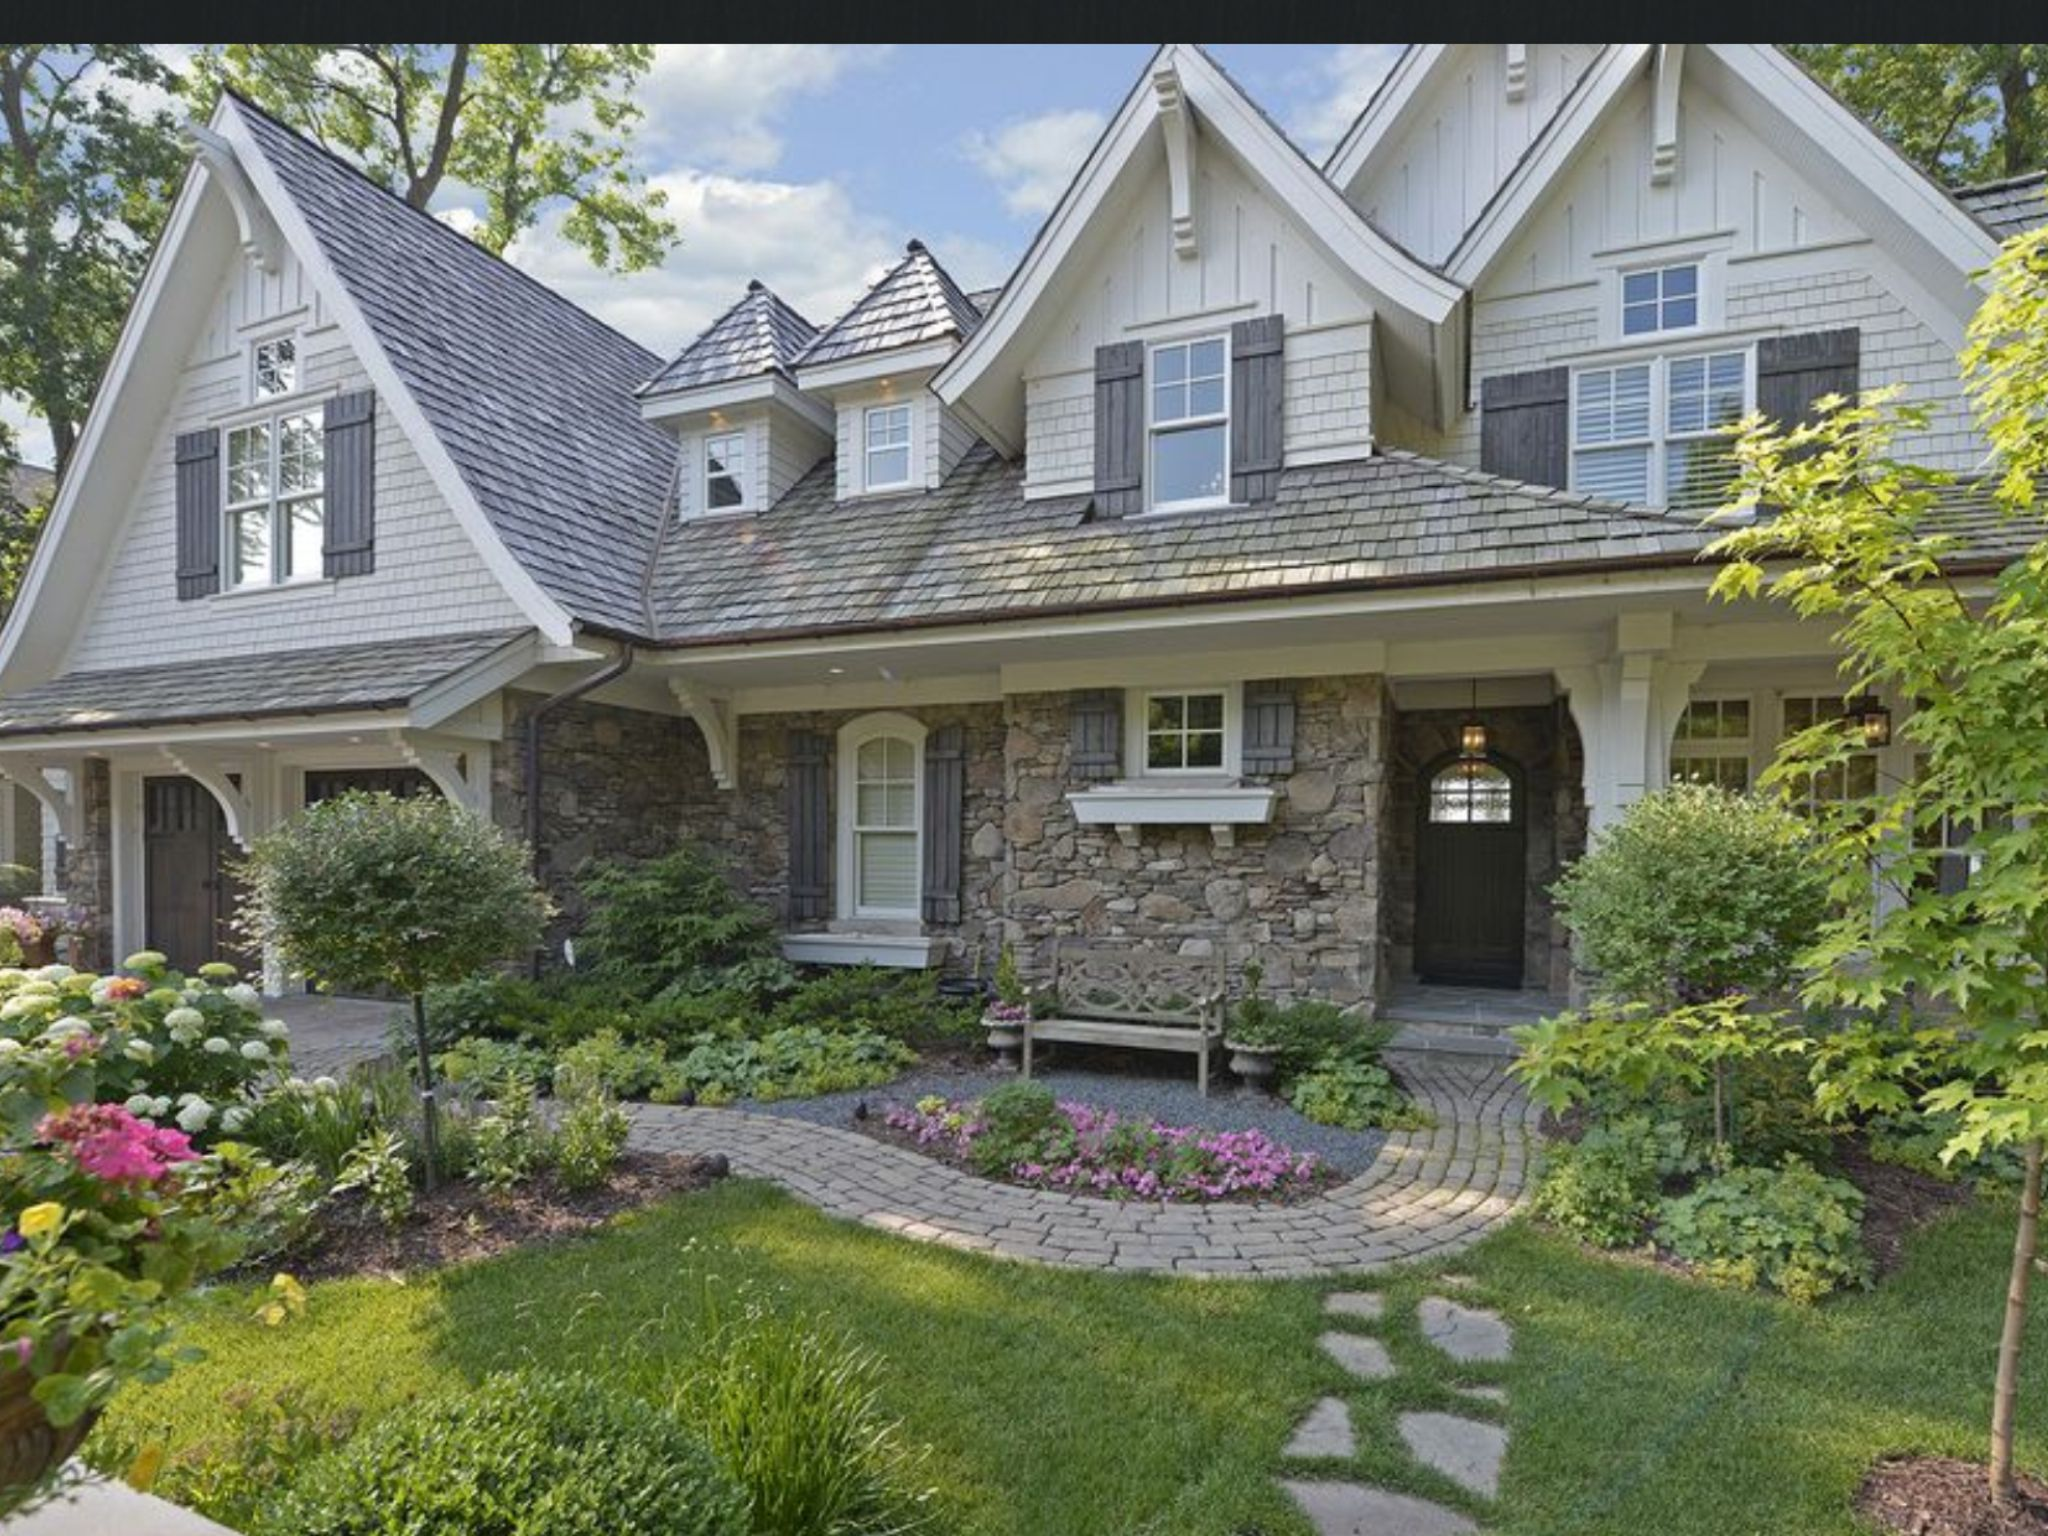 Craftsman Home Exteriors | Share | homes | Pinterest ...